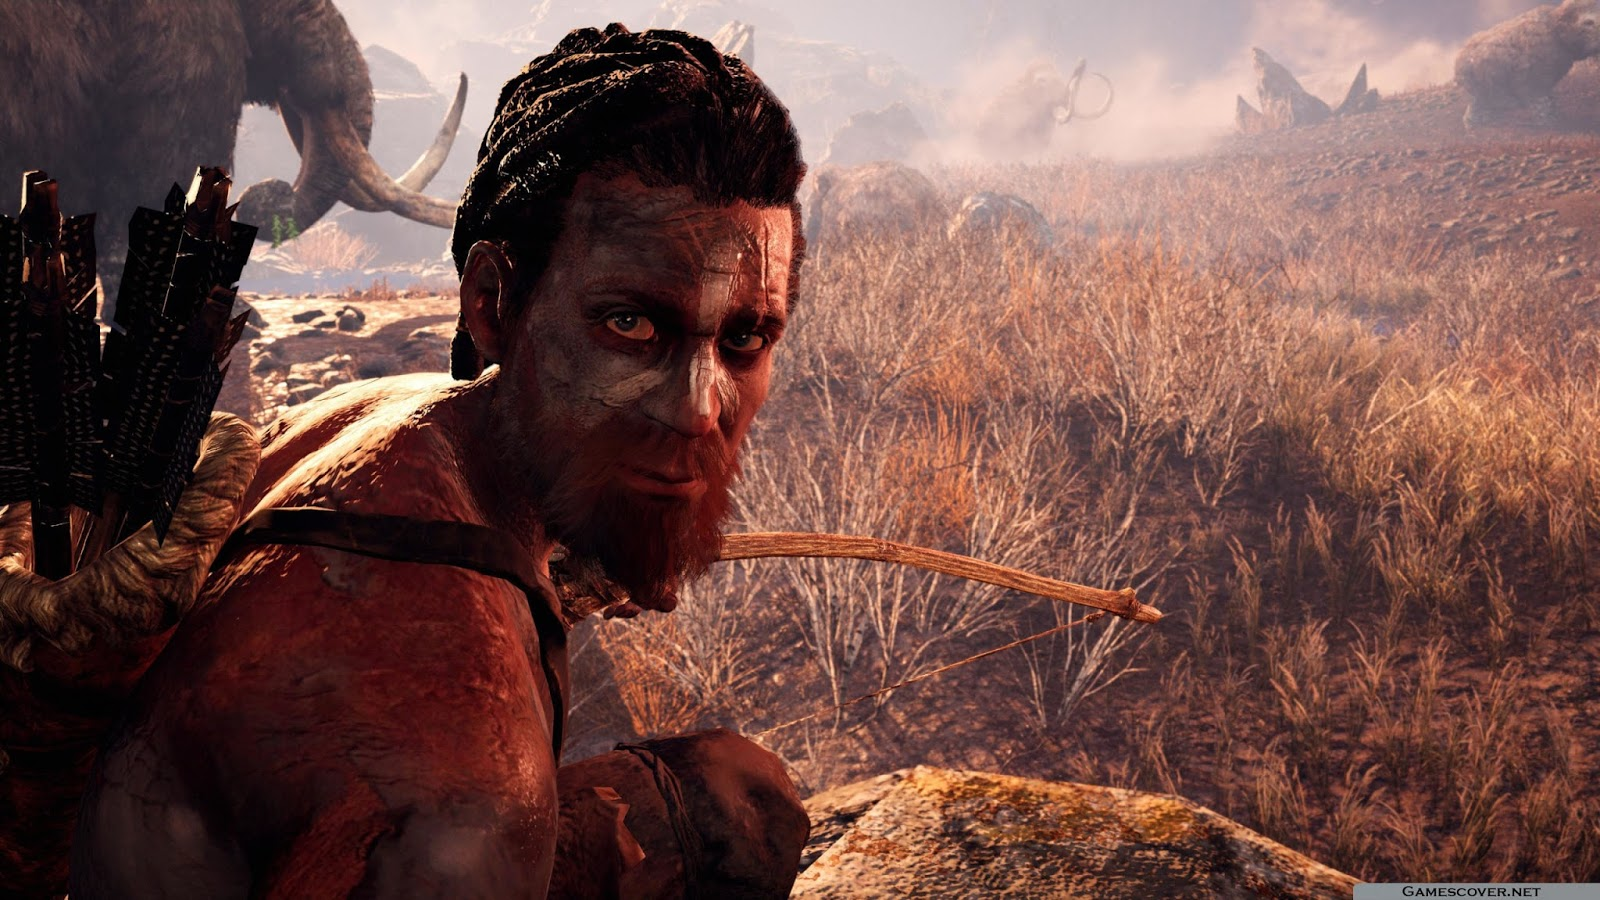 Far Cry Primal Wallpapers Playstation Xbox And Pc Games